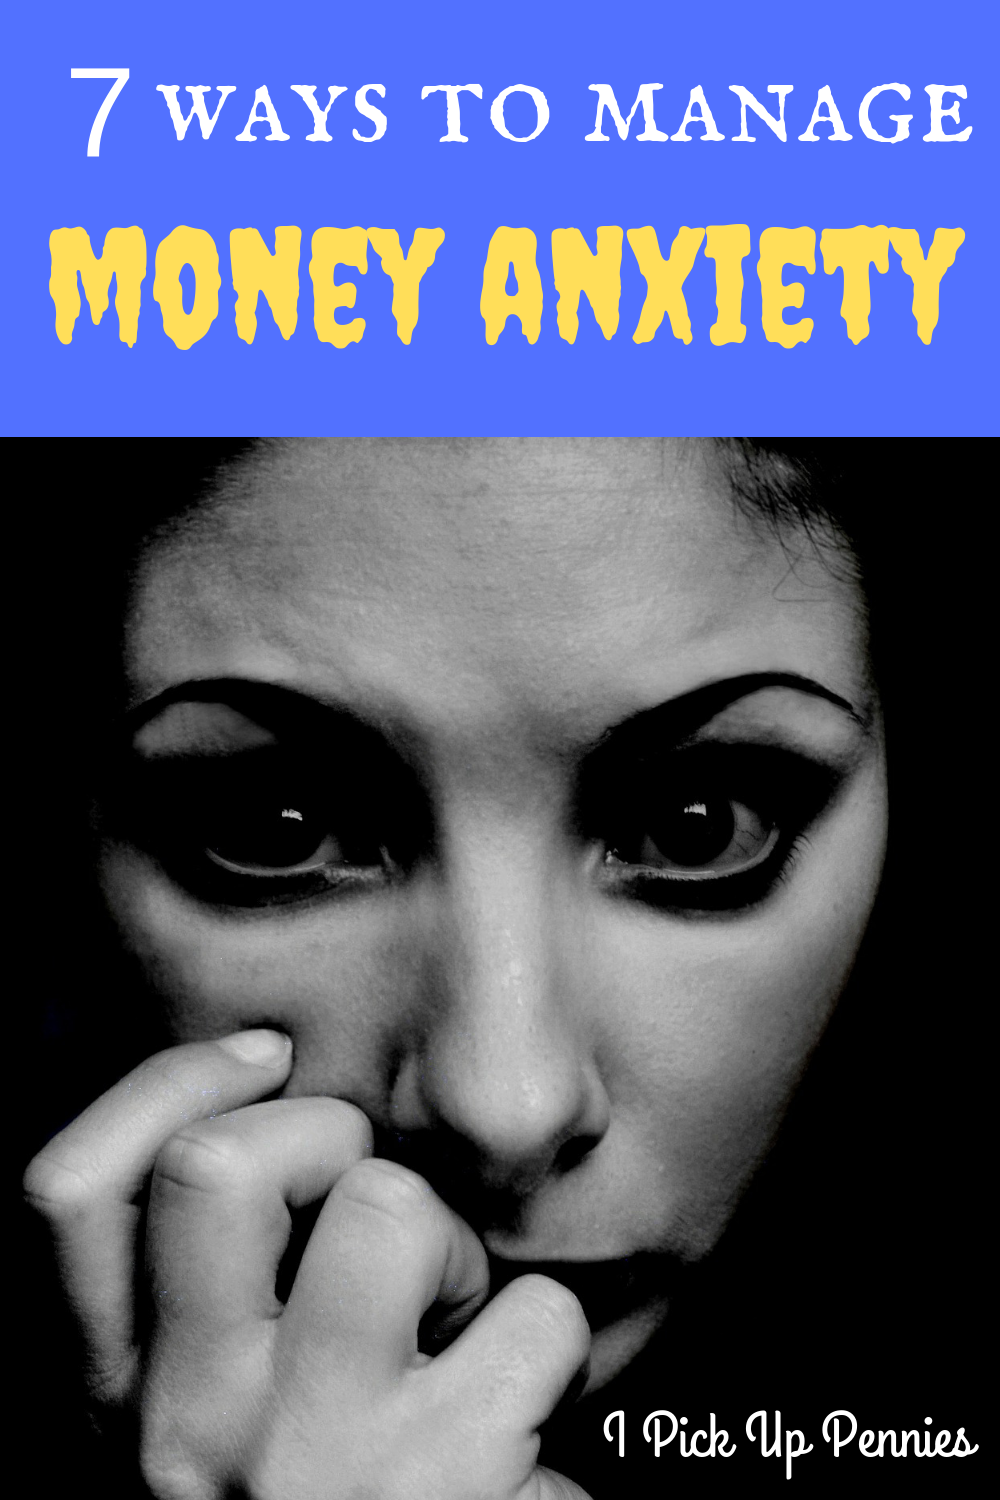 Great ways to cope with #money anxiety!